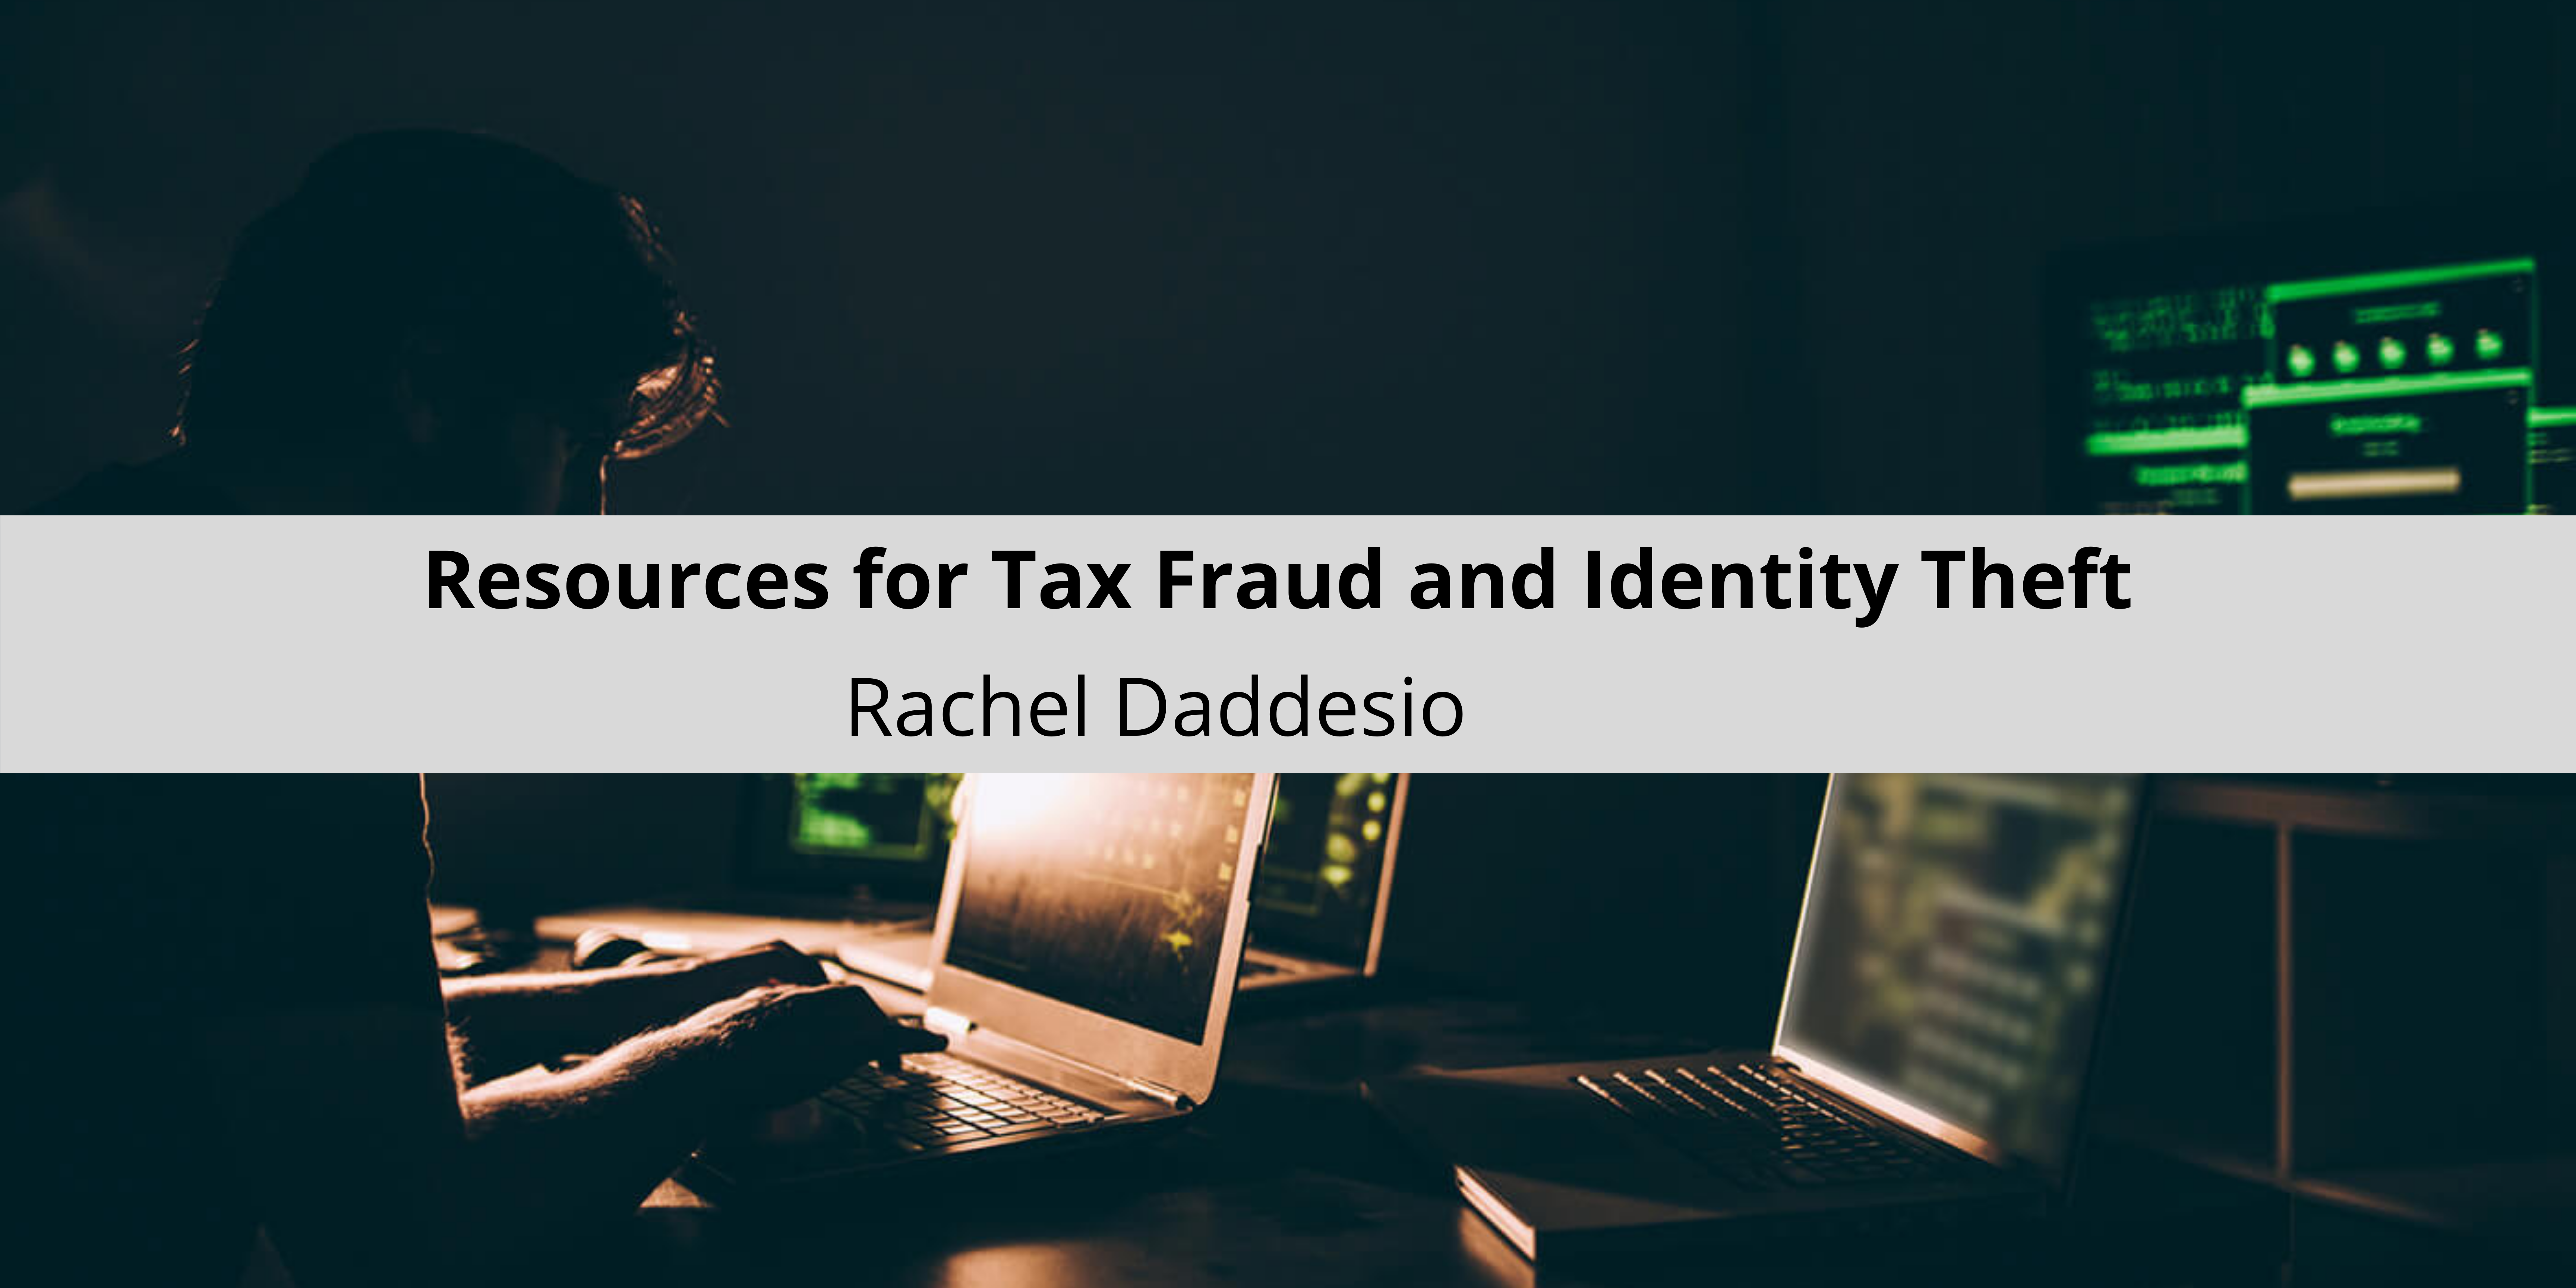 CPA Rachel Daddesio of Montgomery Provides Resources for Tax Fraud and Identity Theft